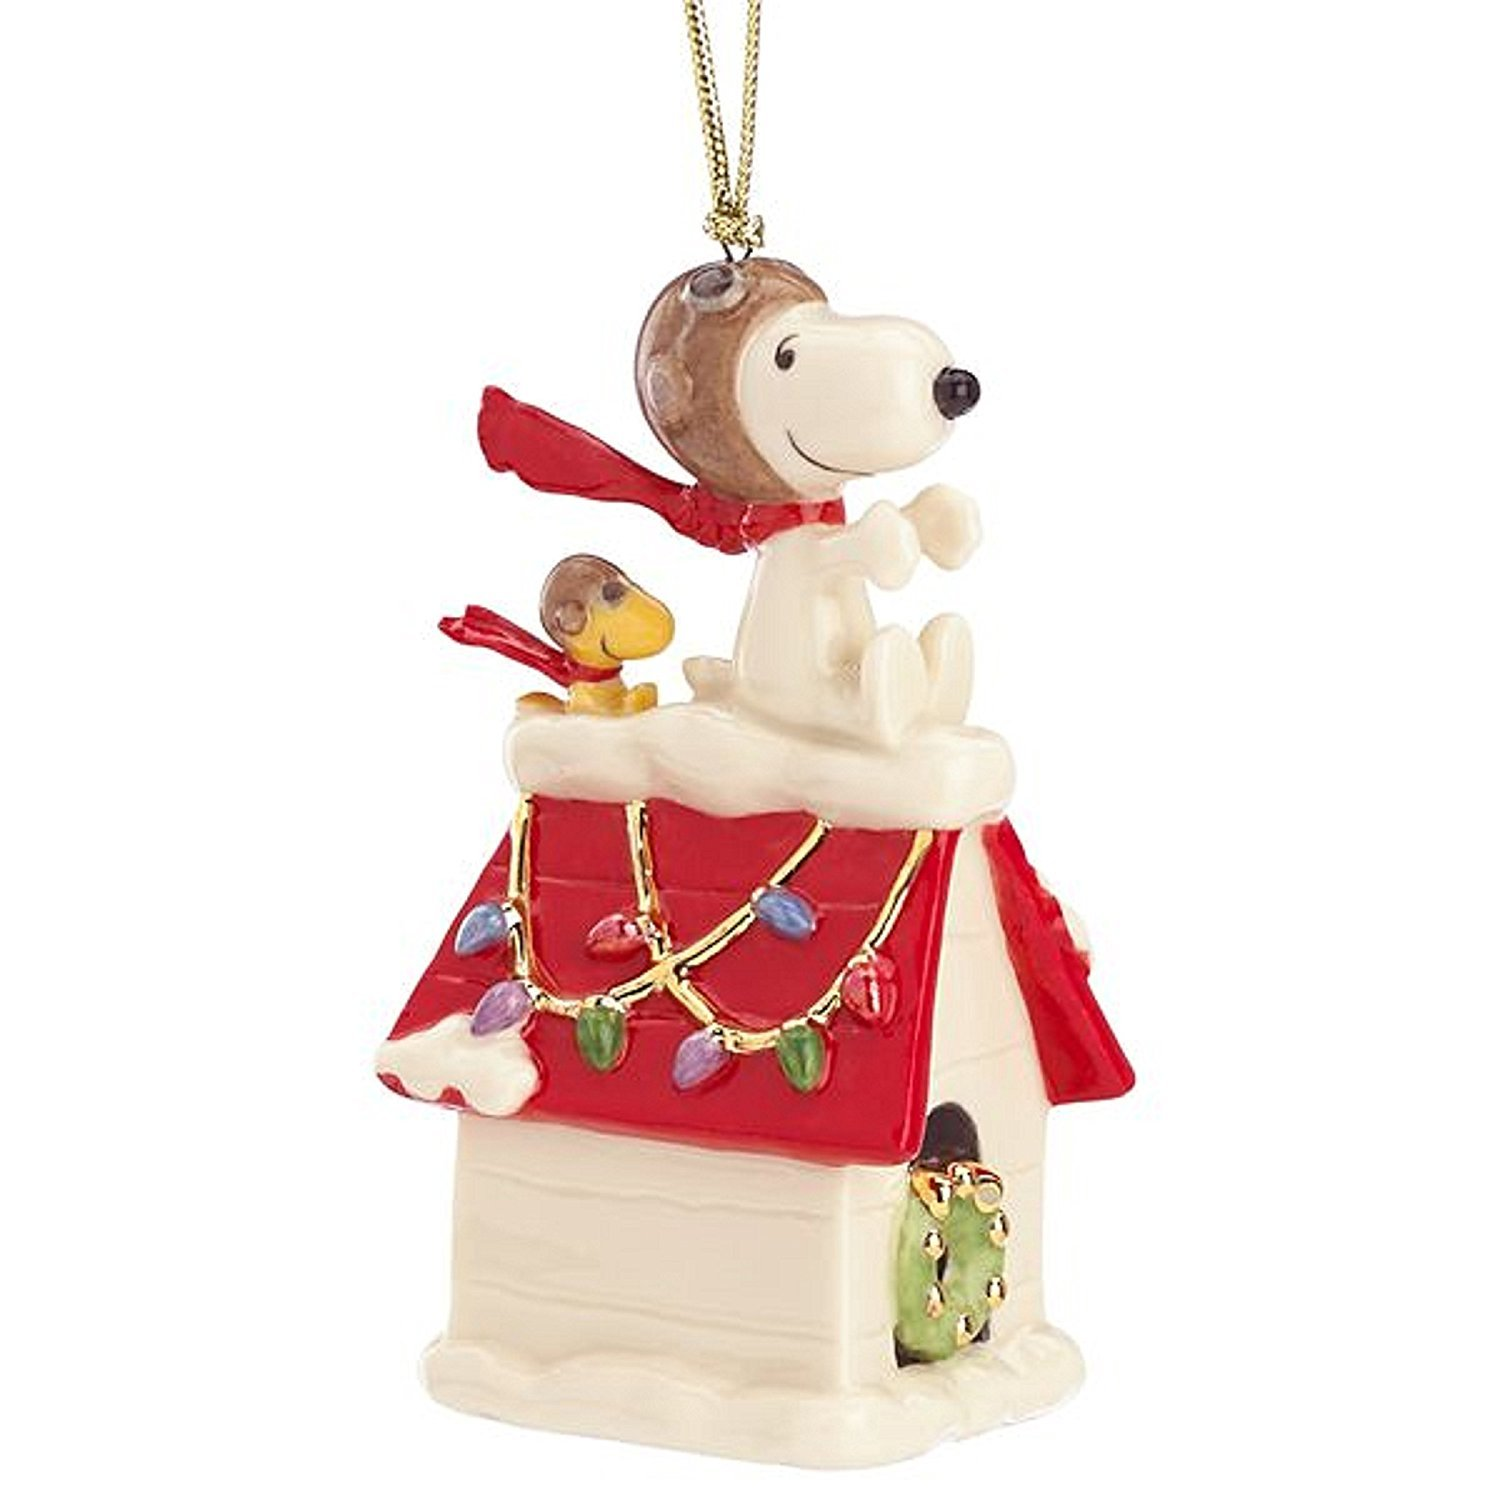 Lenox Peanuts Snoopy The Flying Ace Ornament Figurine Dog House Pilot Red Baron